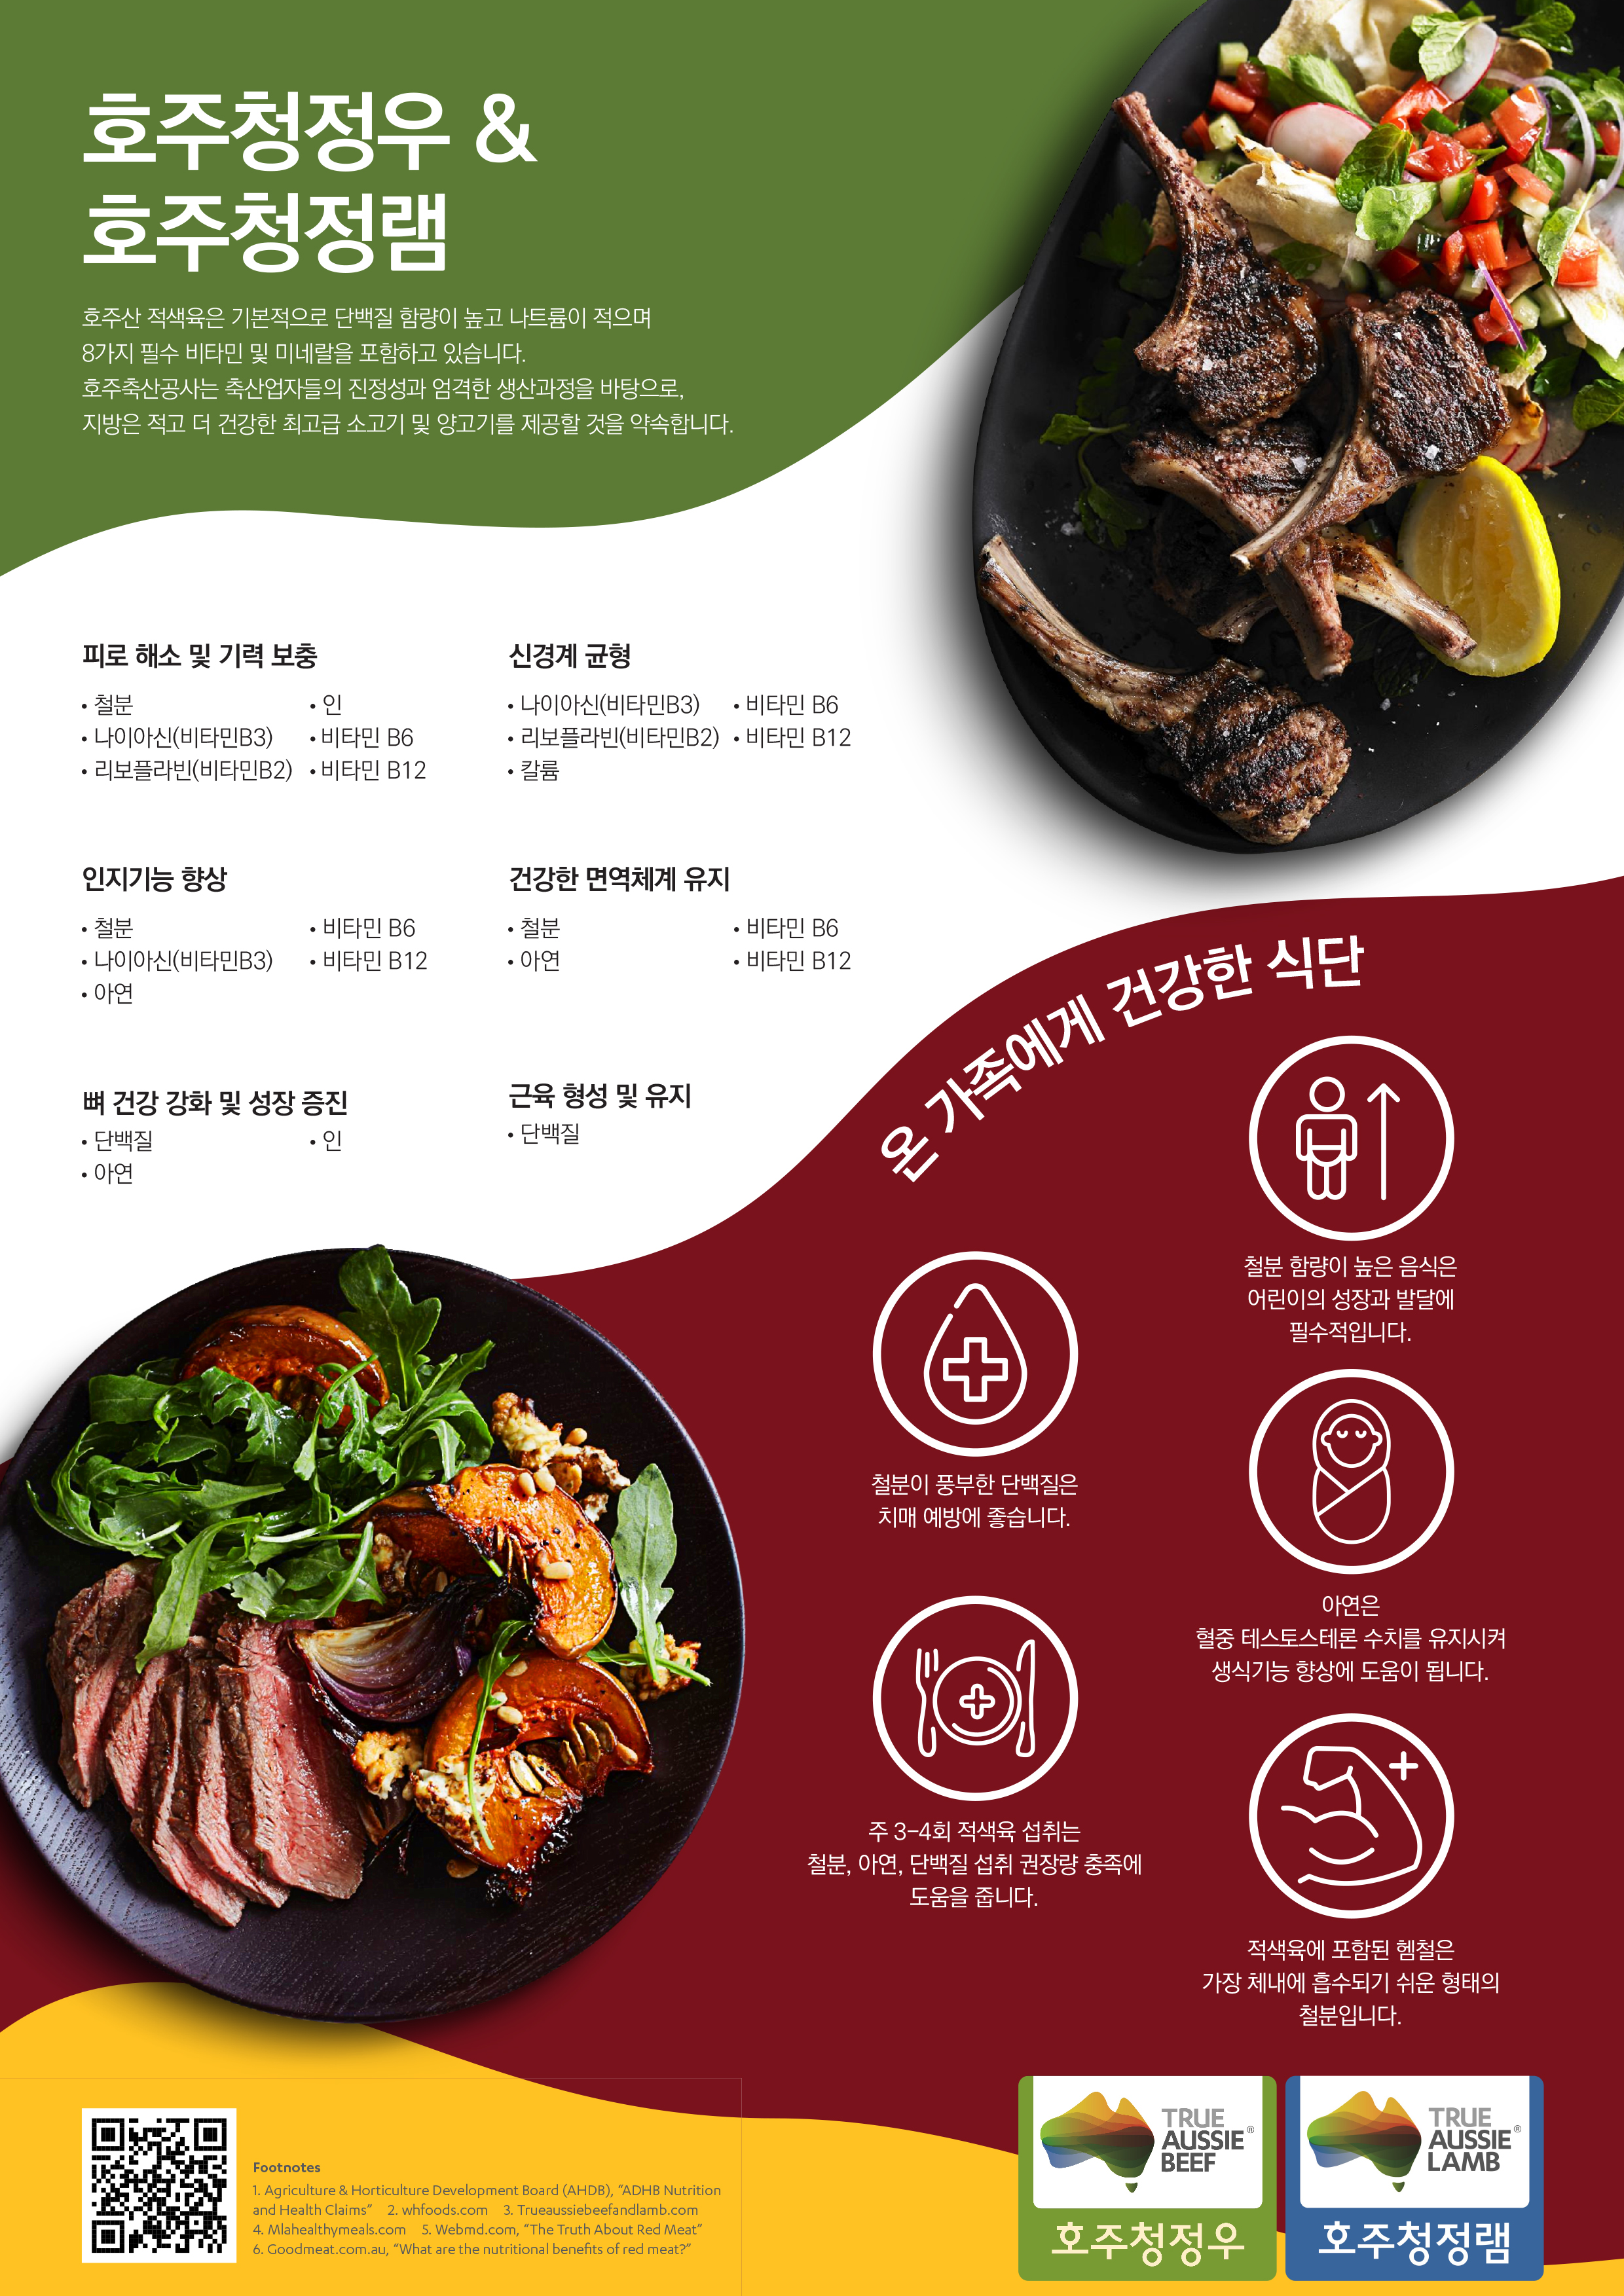 Nutrition Facts Sheet from HO_Kor(20200924).jpg